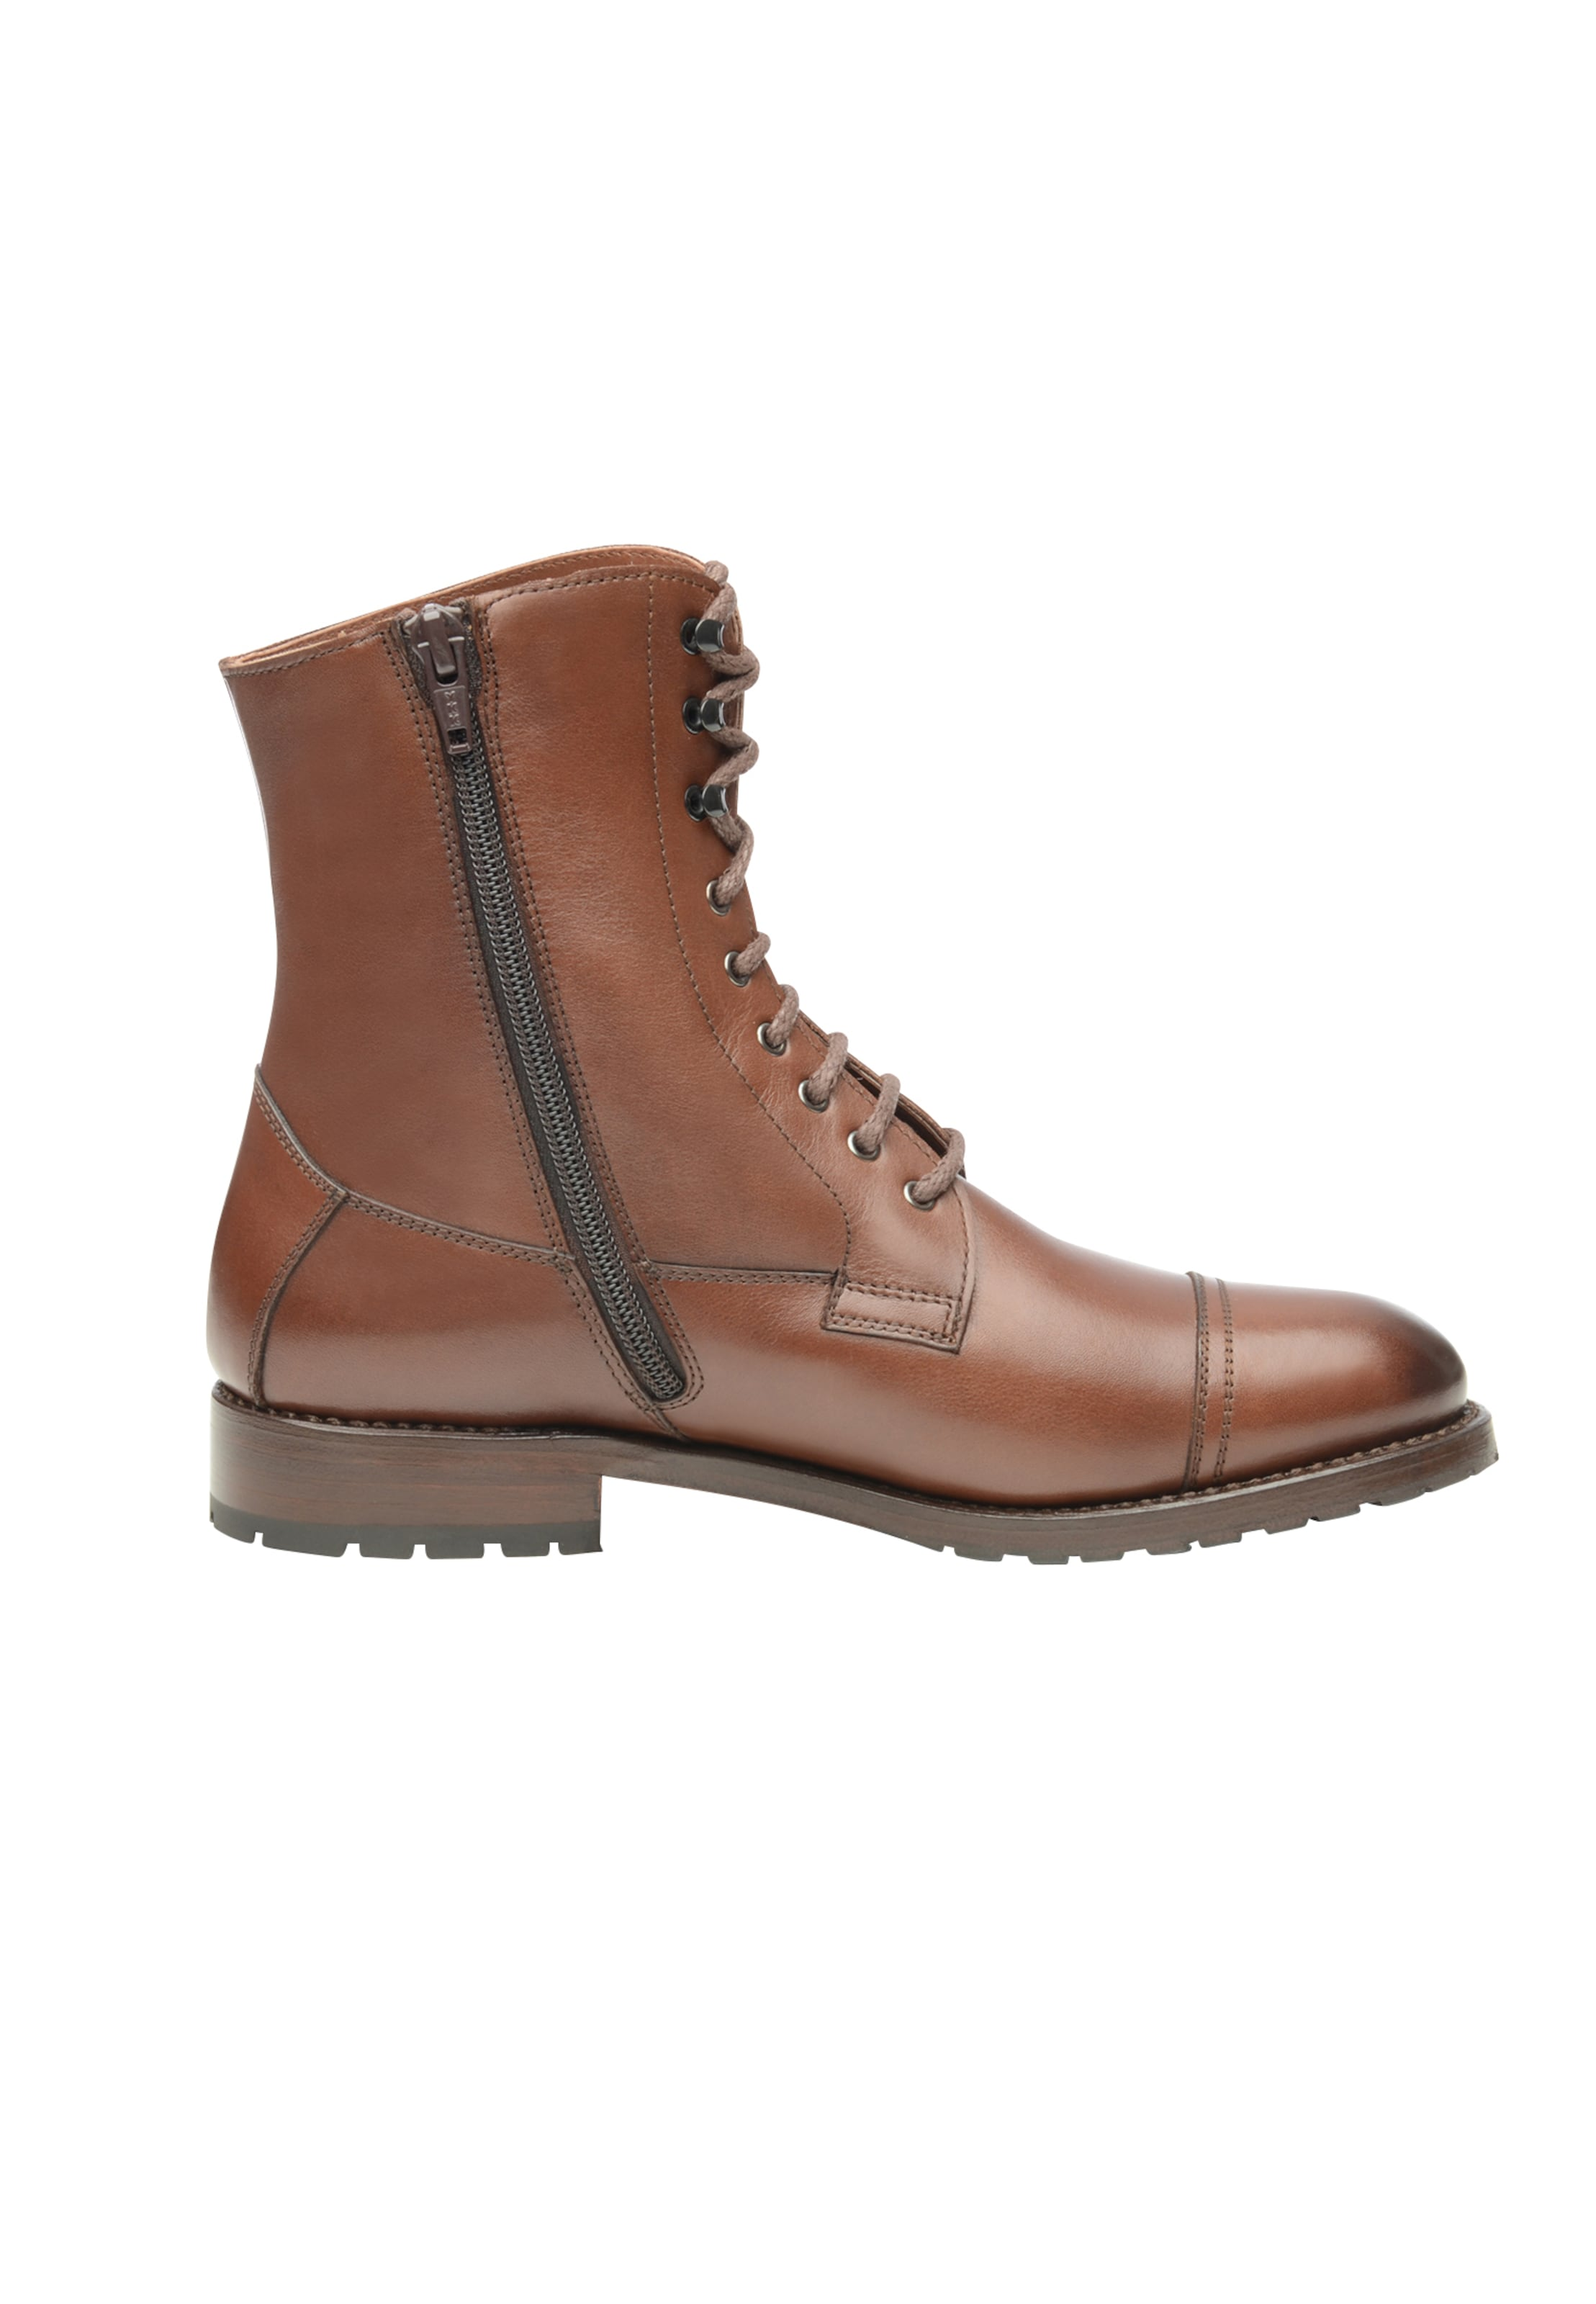 'no275' Braun Shoepassion 'no275' In Winterboots In Braun Winterboots Shoepassion Shoepassion Winterboots OXZiukP